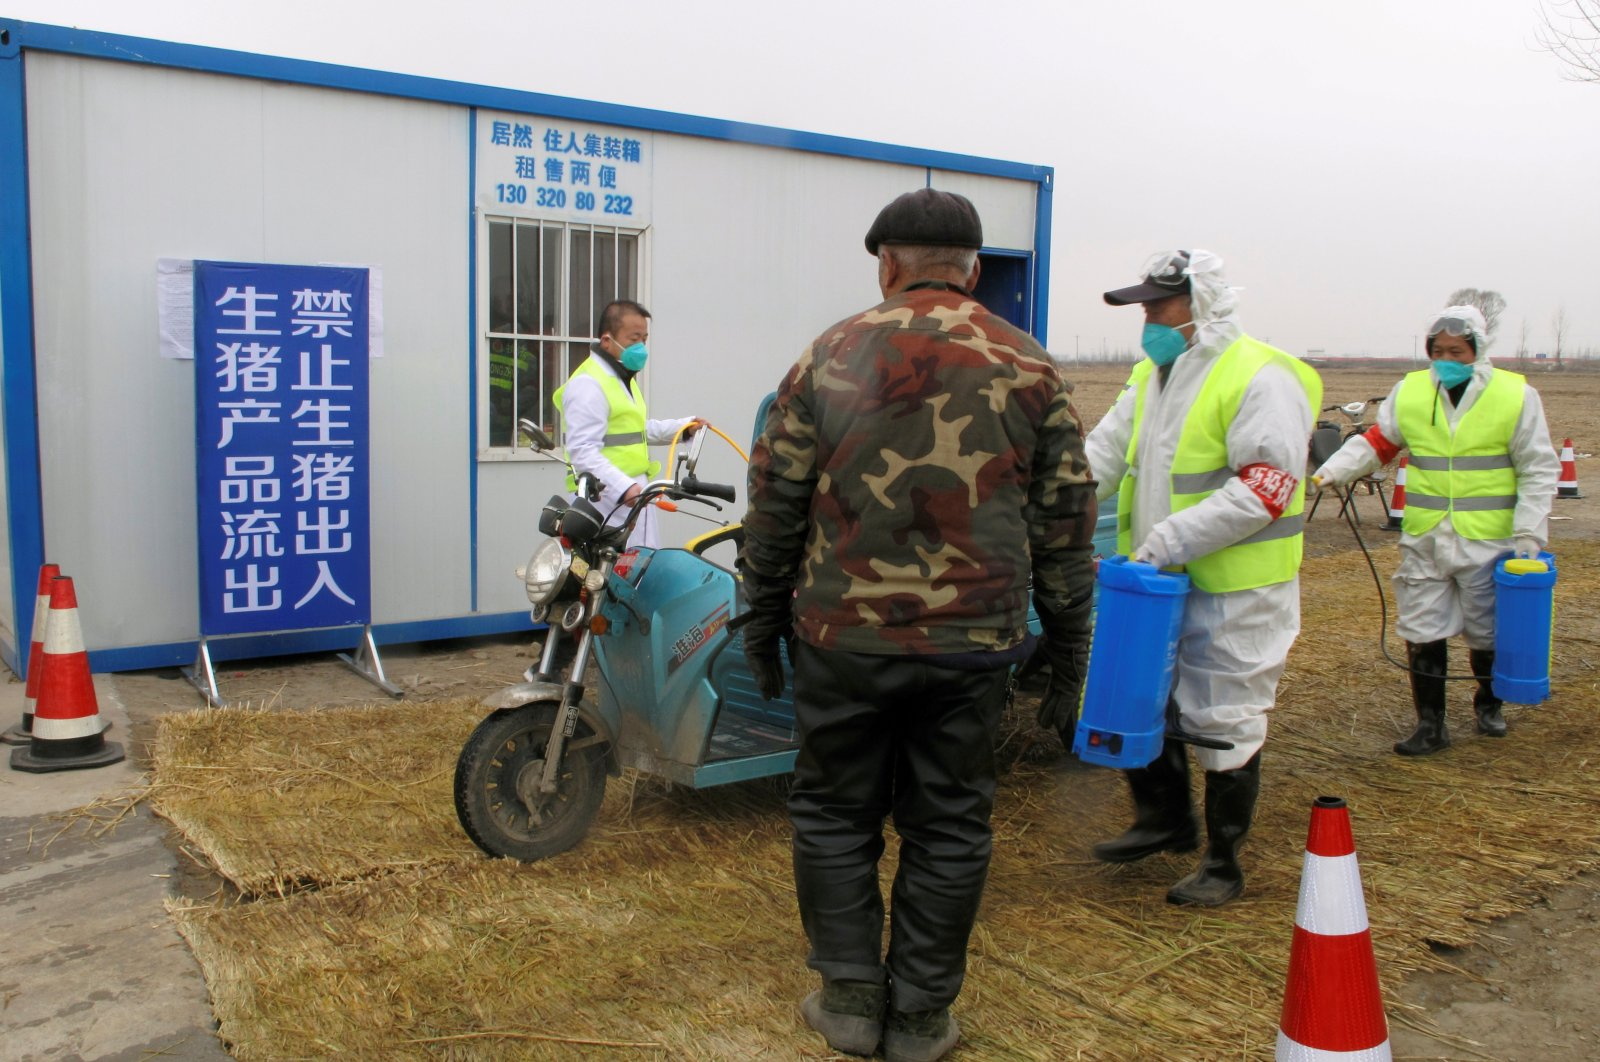 Workers in protective suits disinfect a vehicle at a checkpoint, leading to a farm owned by Hebei Dawu Group where African swine fever was detected, in the Xushui district of Baoding, Hebei province, China, Feb. 26, 2019. (REUTERS Photo)